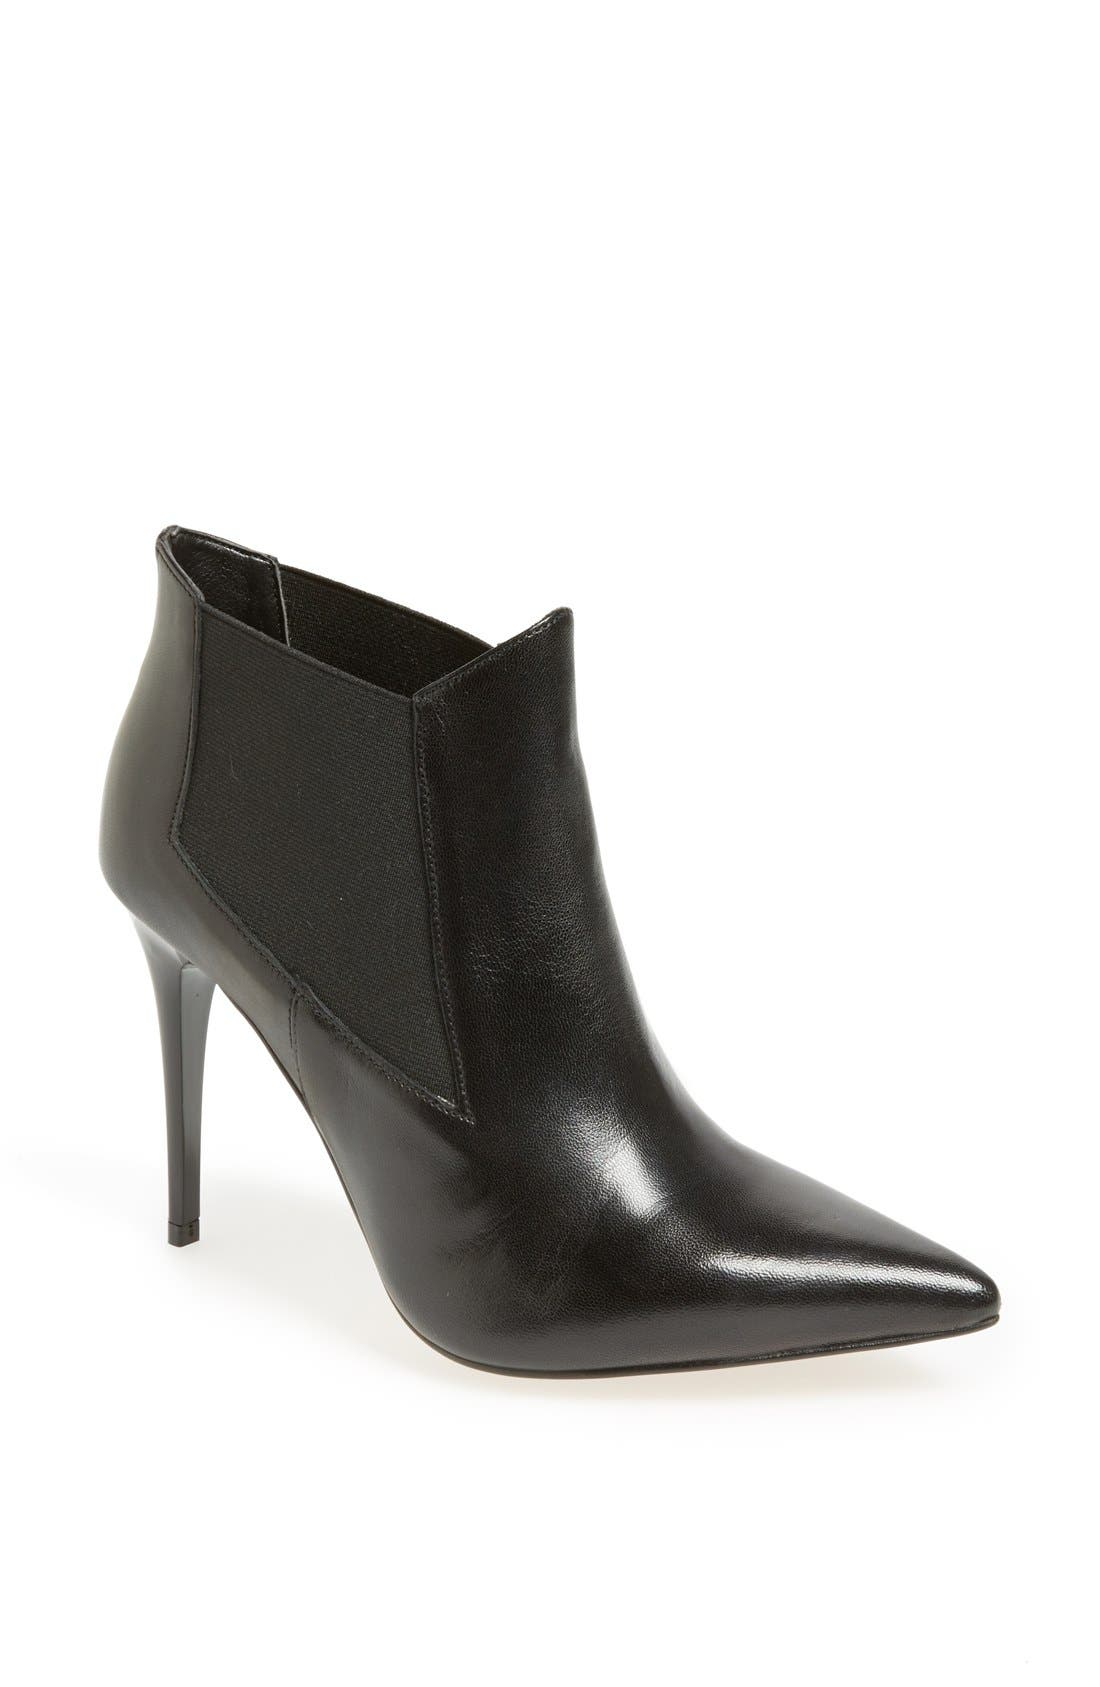 Main Image - Topshop 'All Night' Chelsea Boot